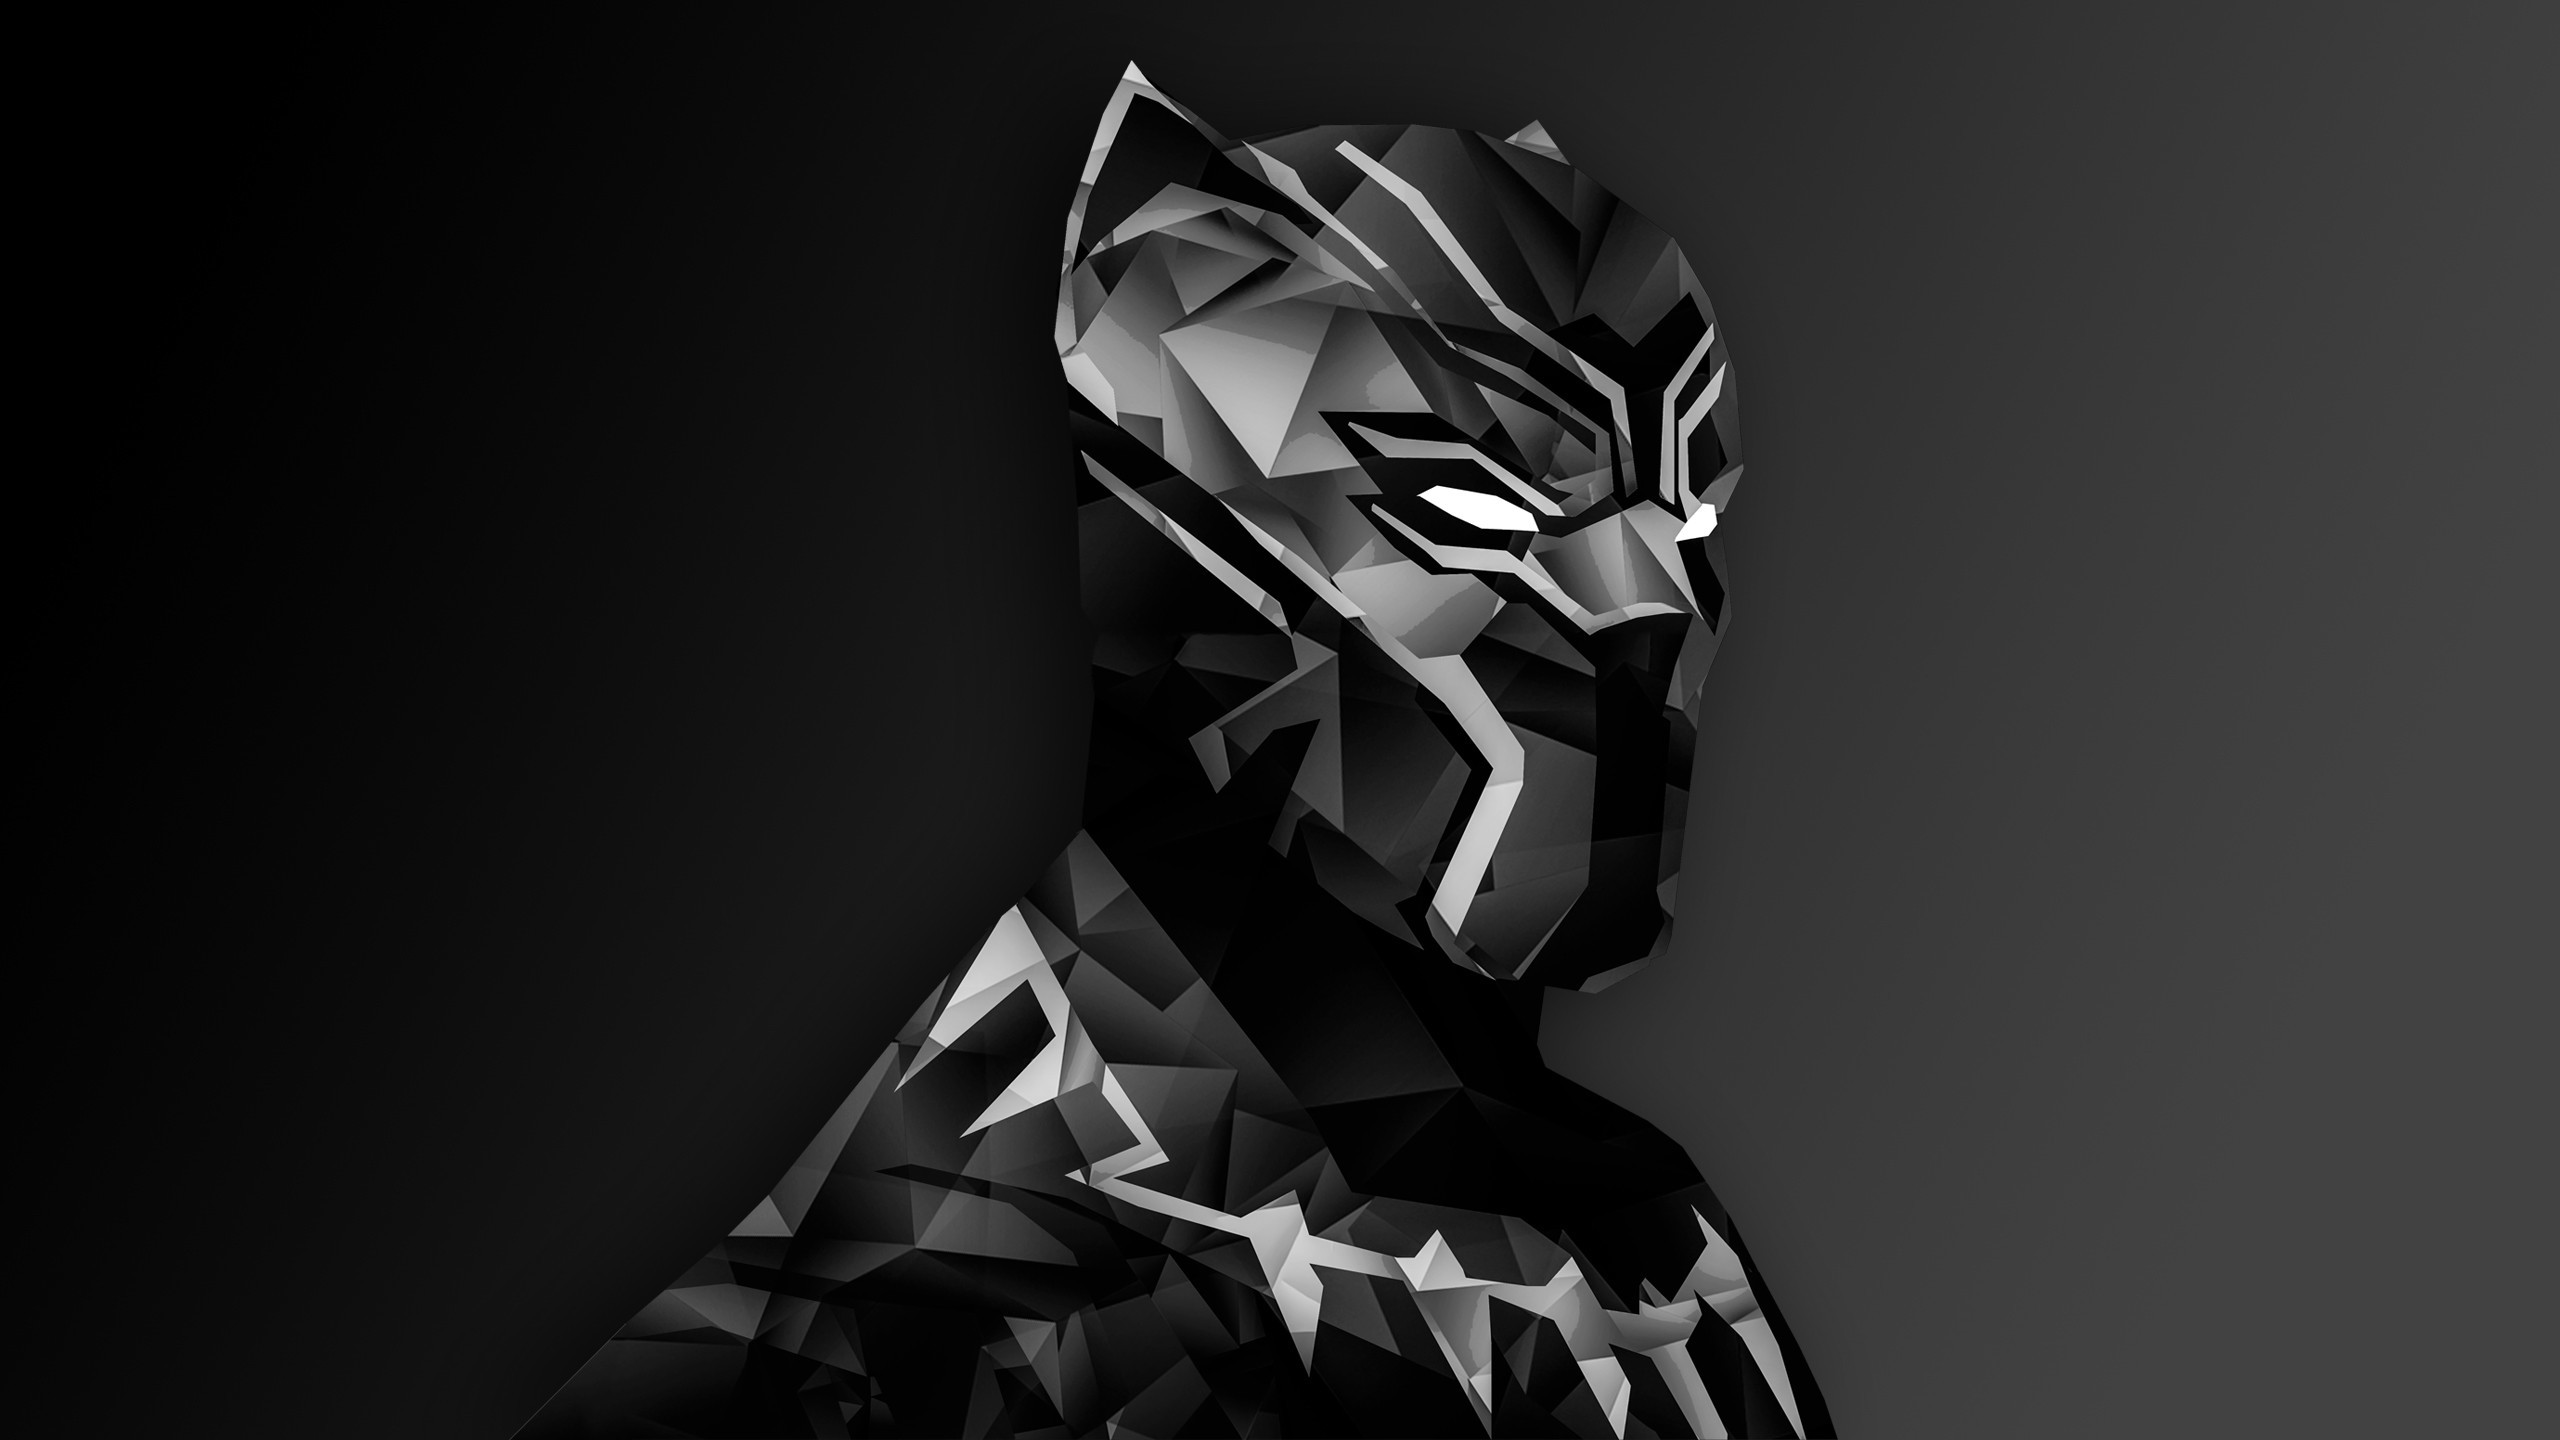 Pantera Wallpaper For Android Top 10 Hd 1080p Black Panther Wallpapers